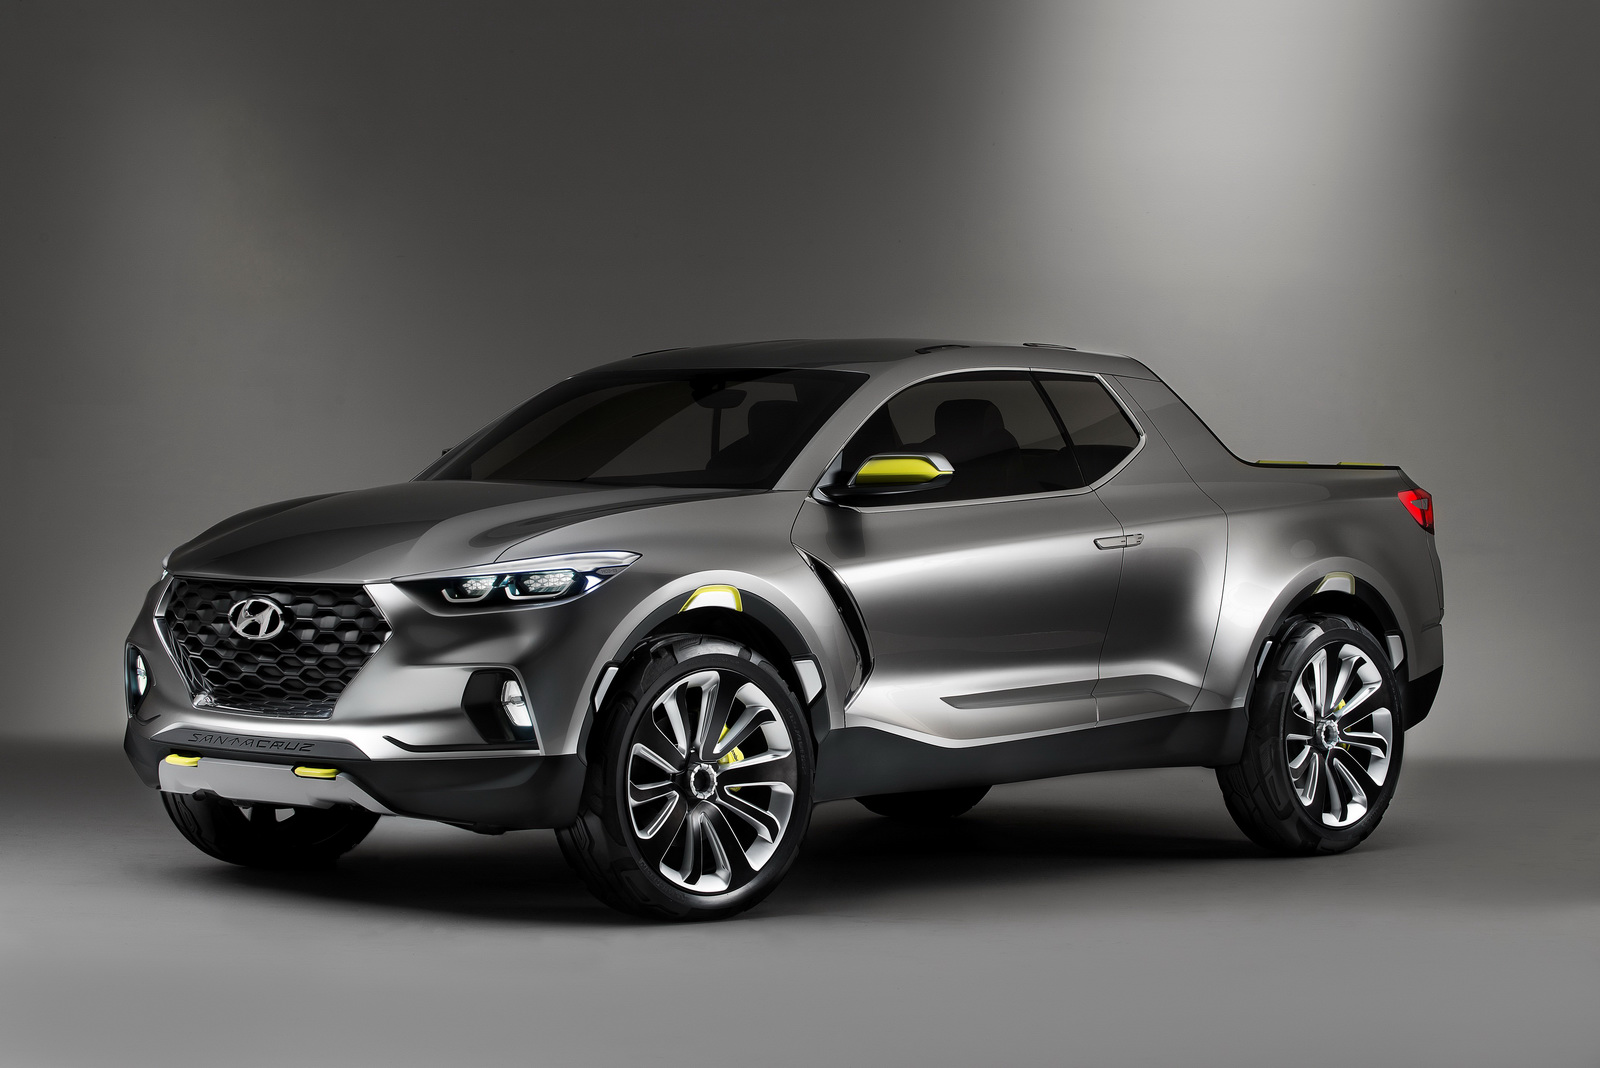 Kia could create hyundai santa cruz based pickup truck